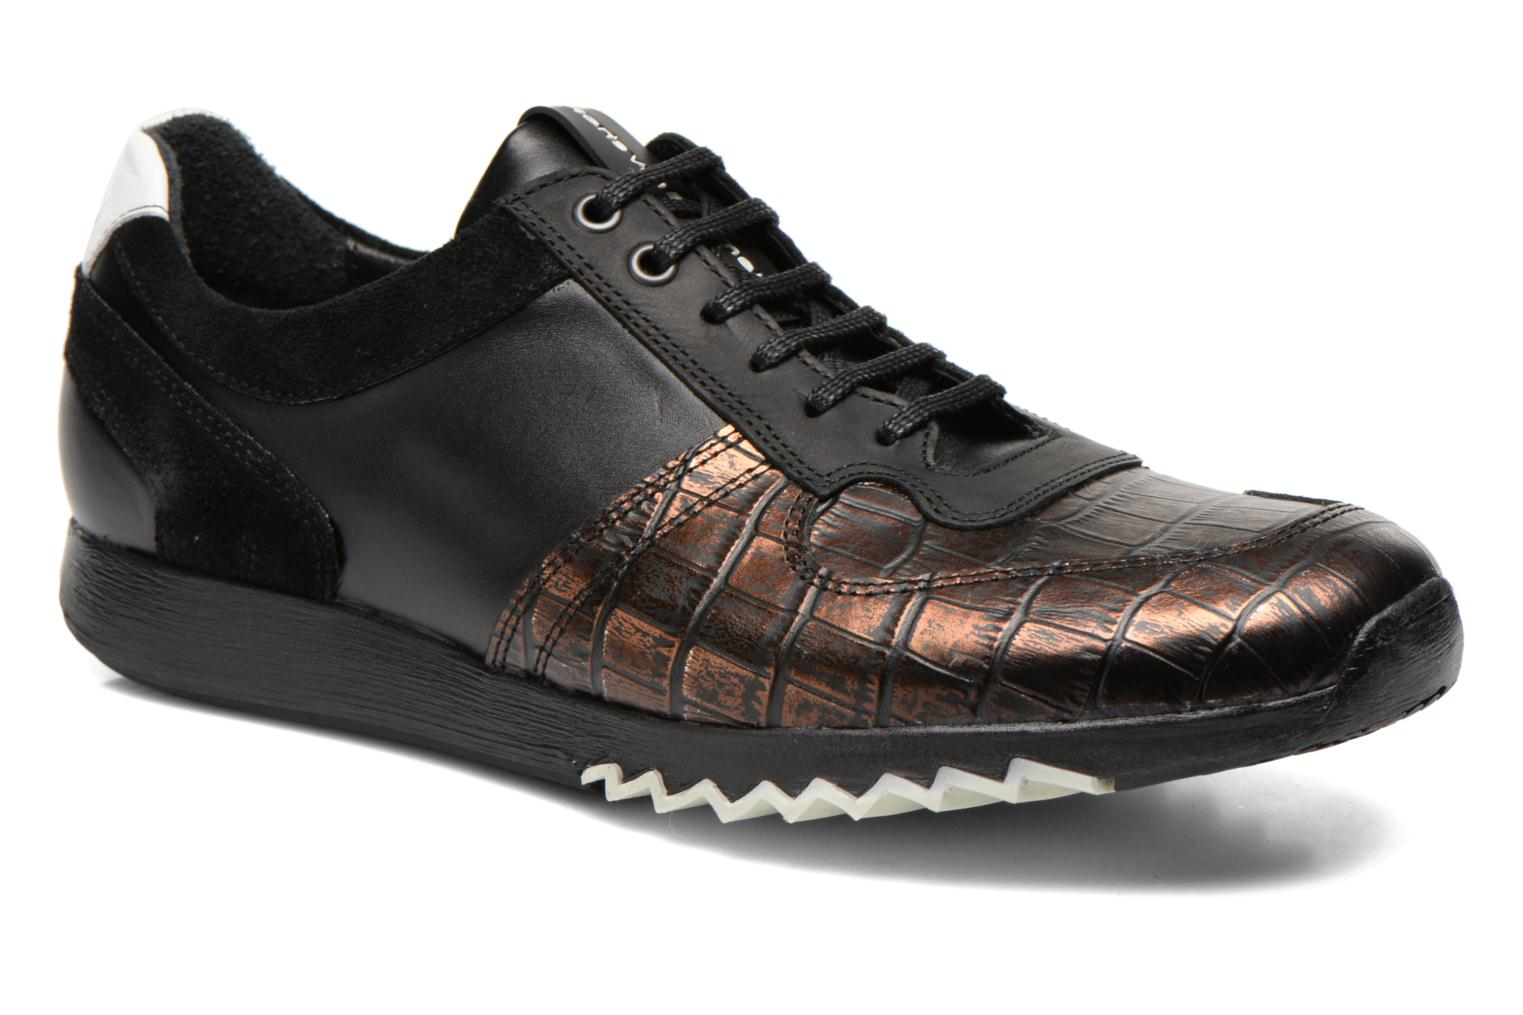 Sneakers Balthazar 16127/14 by Floris Van Bommel